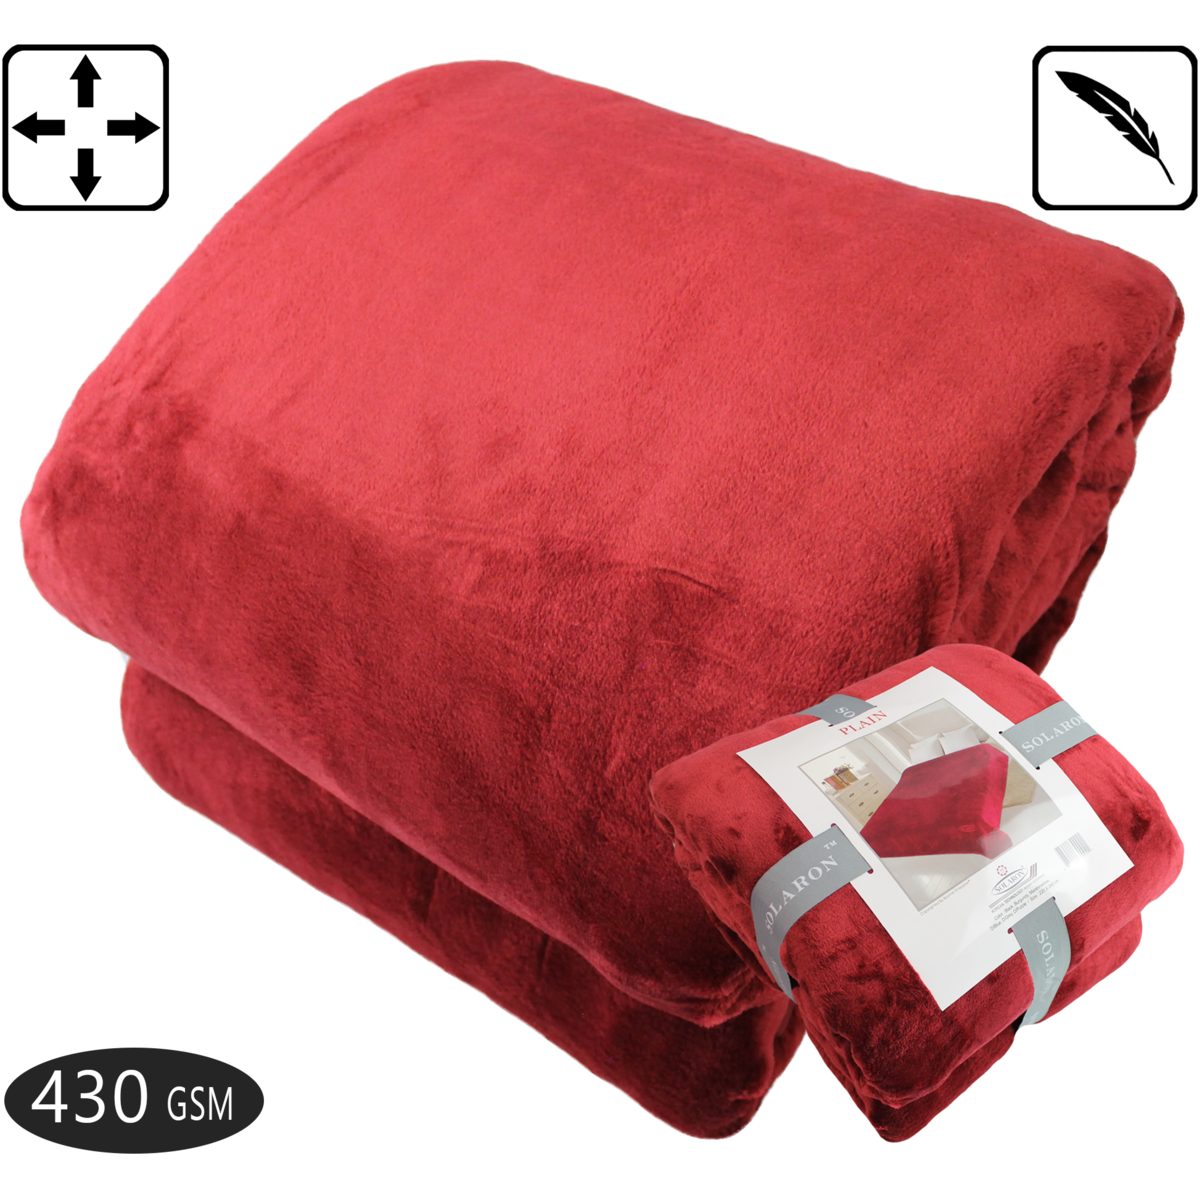 FOHOG COLLECTION Queen Blanket Red X Large Size 430 GSM Thick Flannel Throw Korean Mink Plush Fleece All Season Medium Weight Thermal Sofa Couch Bed 88 x 95 inches